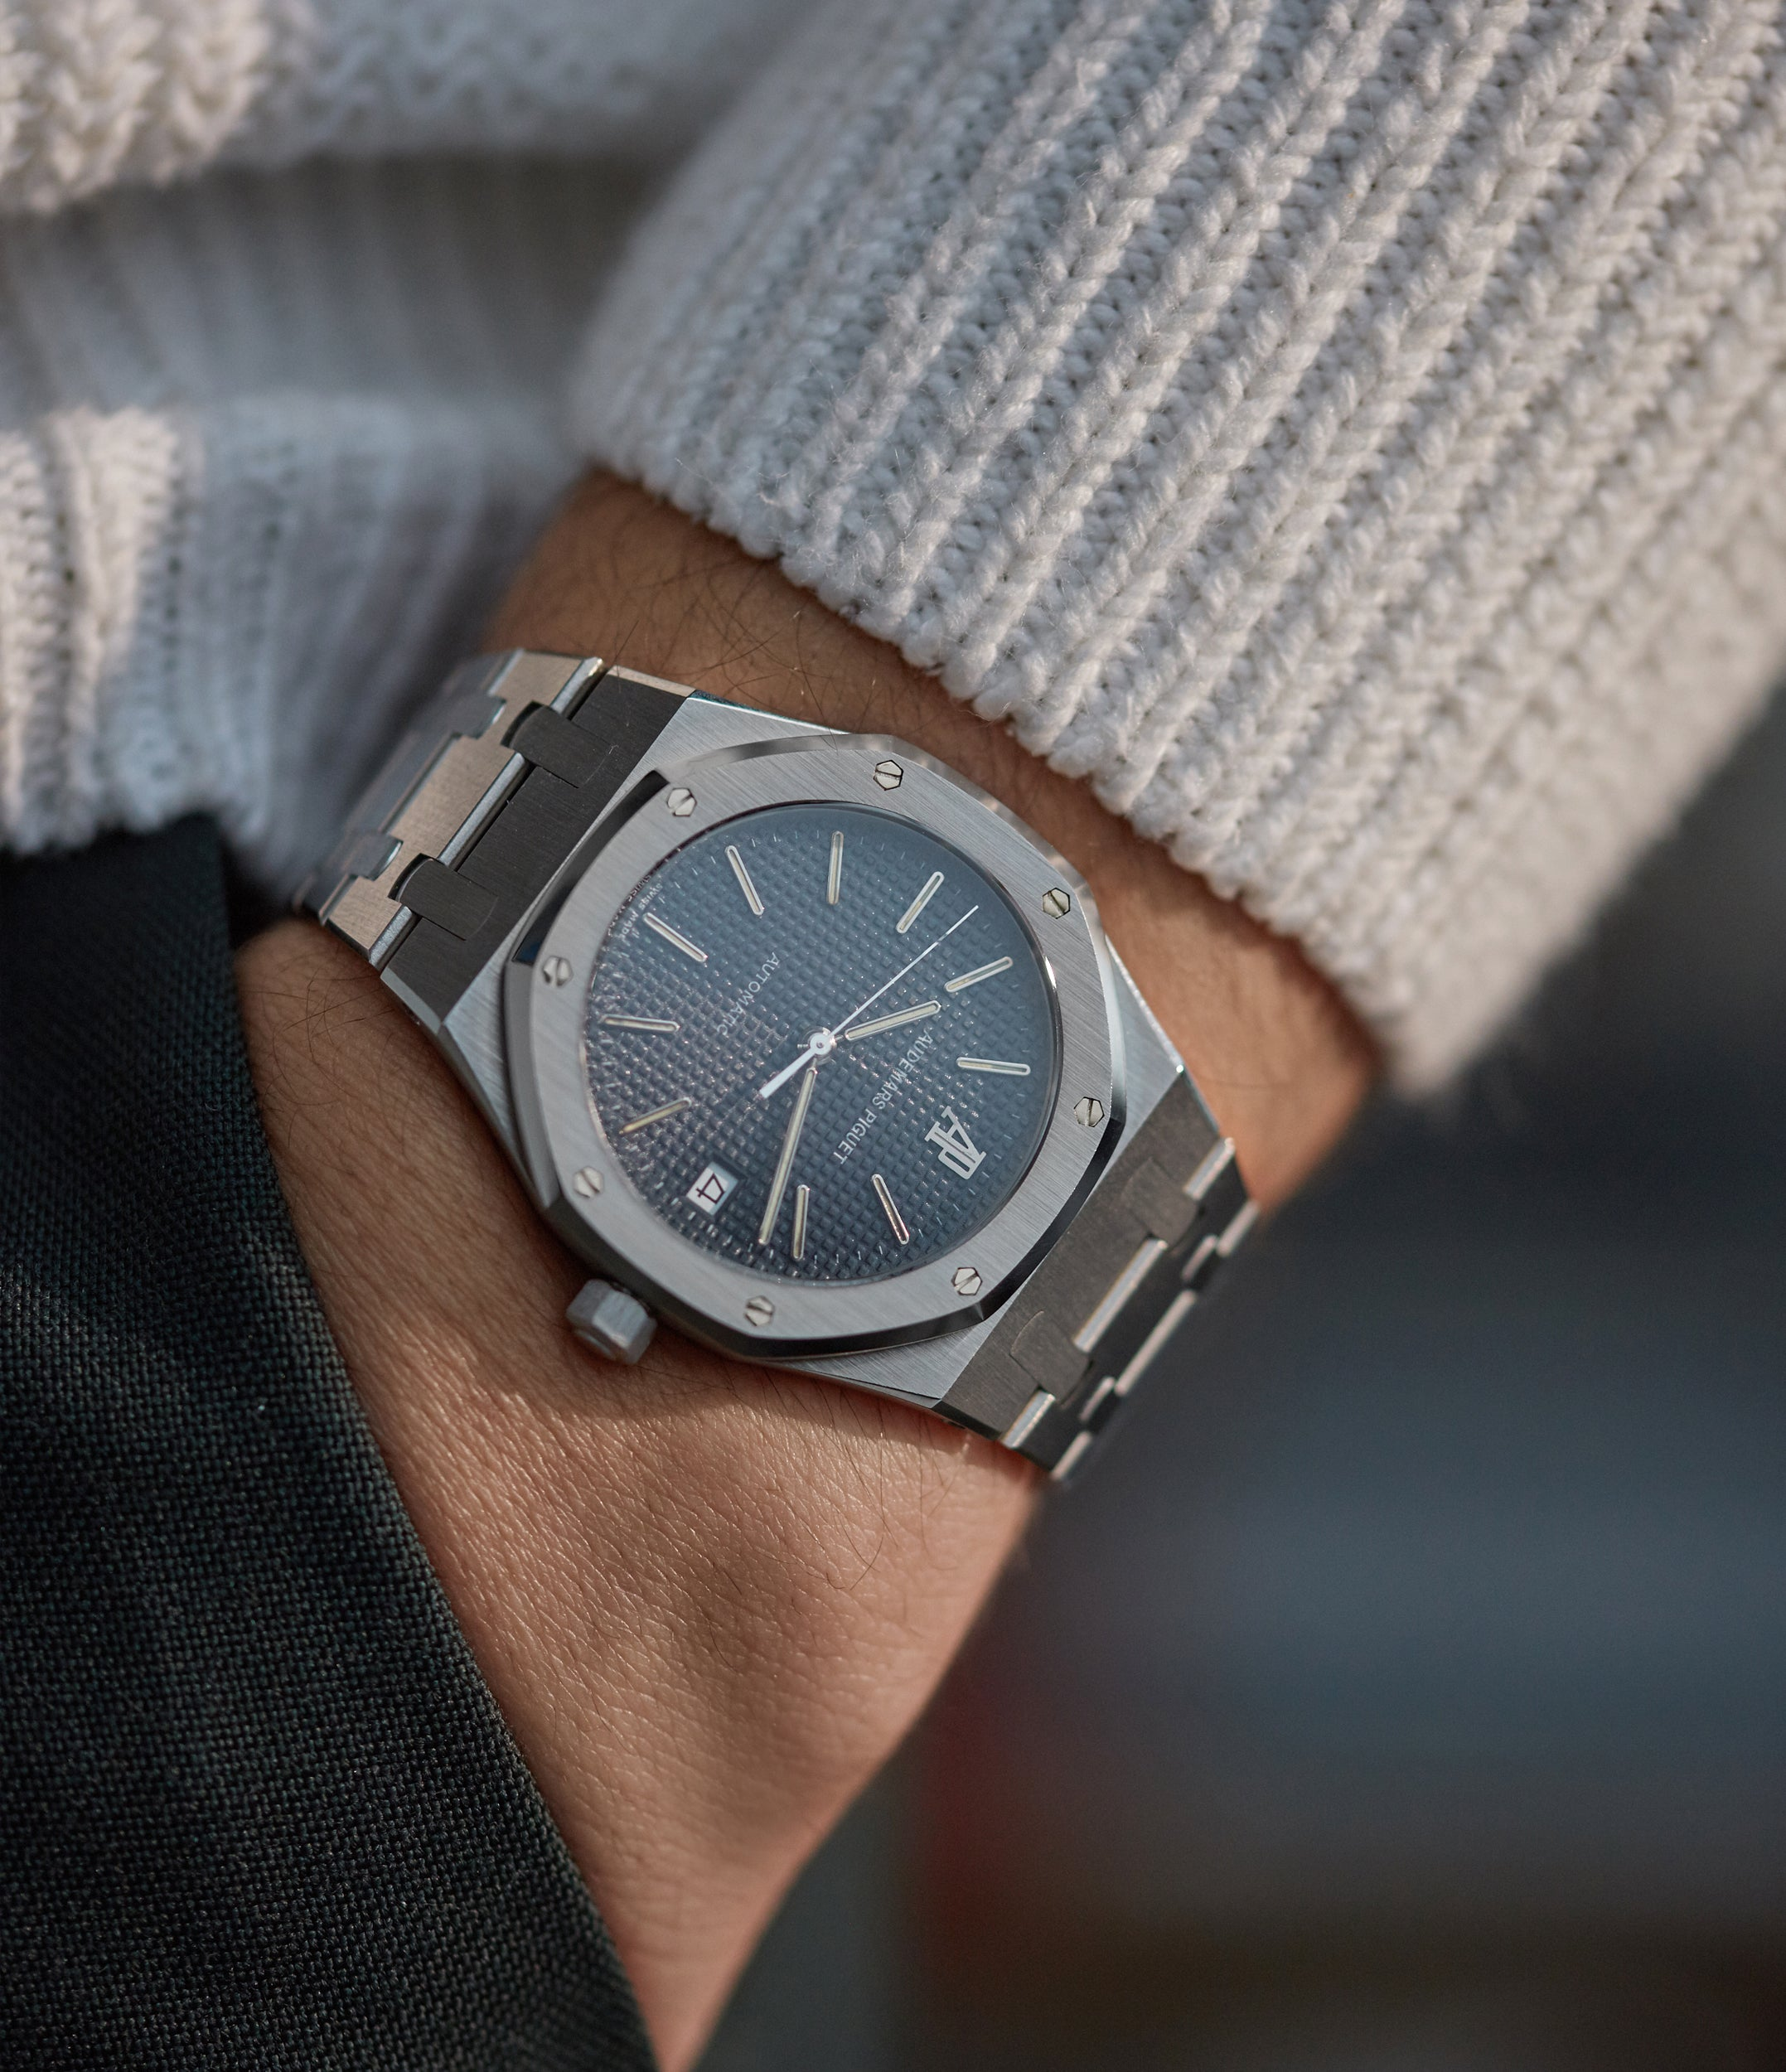 Audemars Piguet Royal Oak 14700 in stainless steel with a black dial pocket shot for A Collected Man London